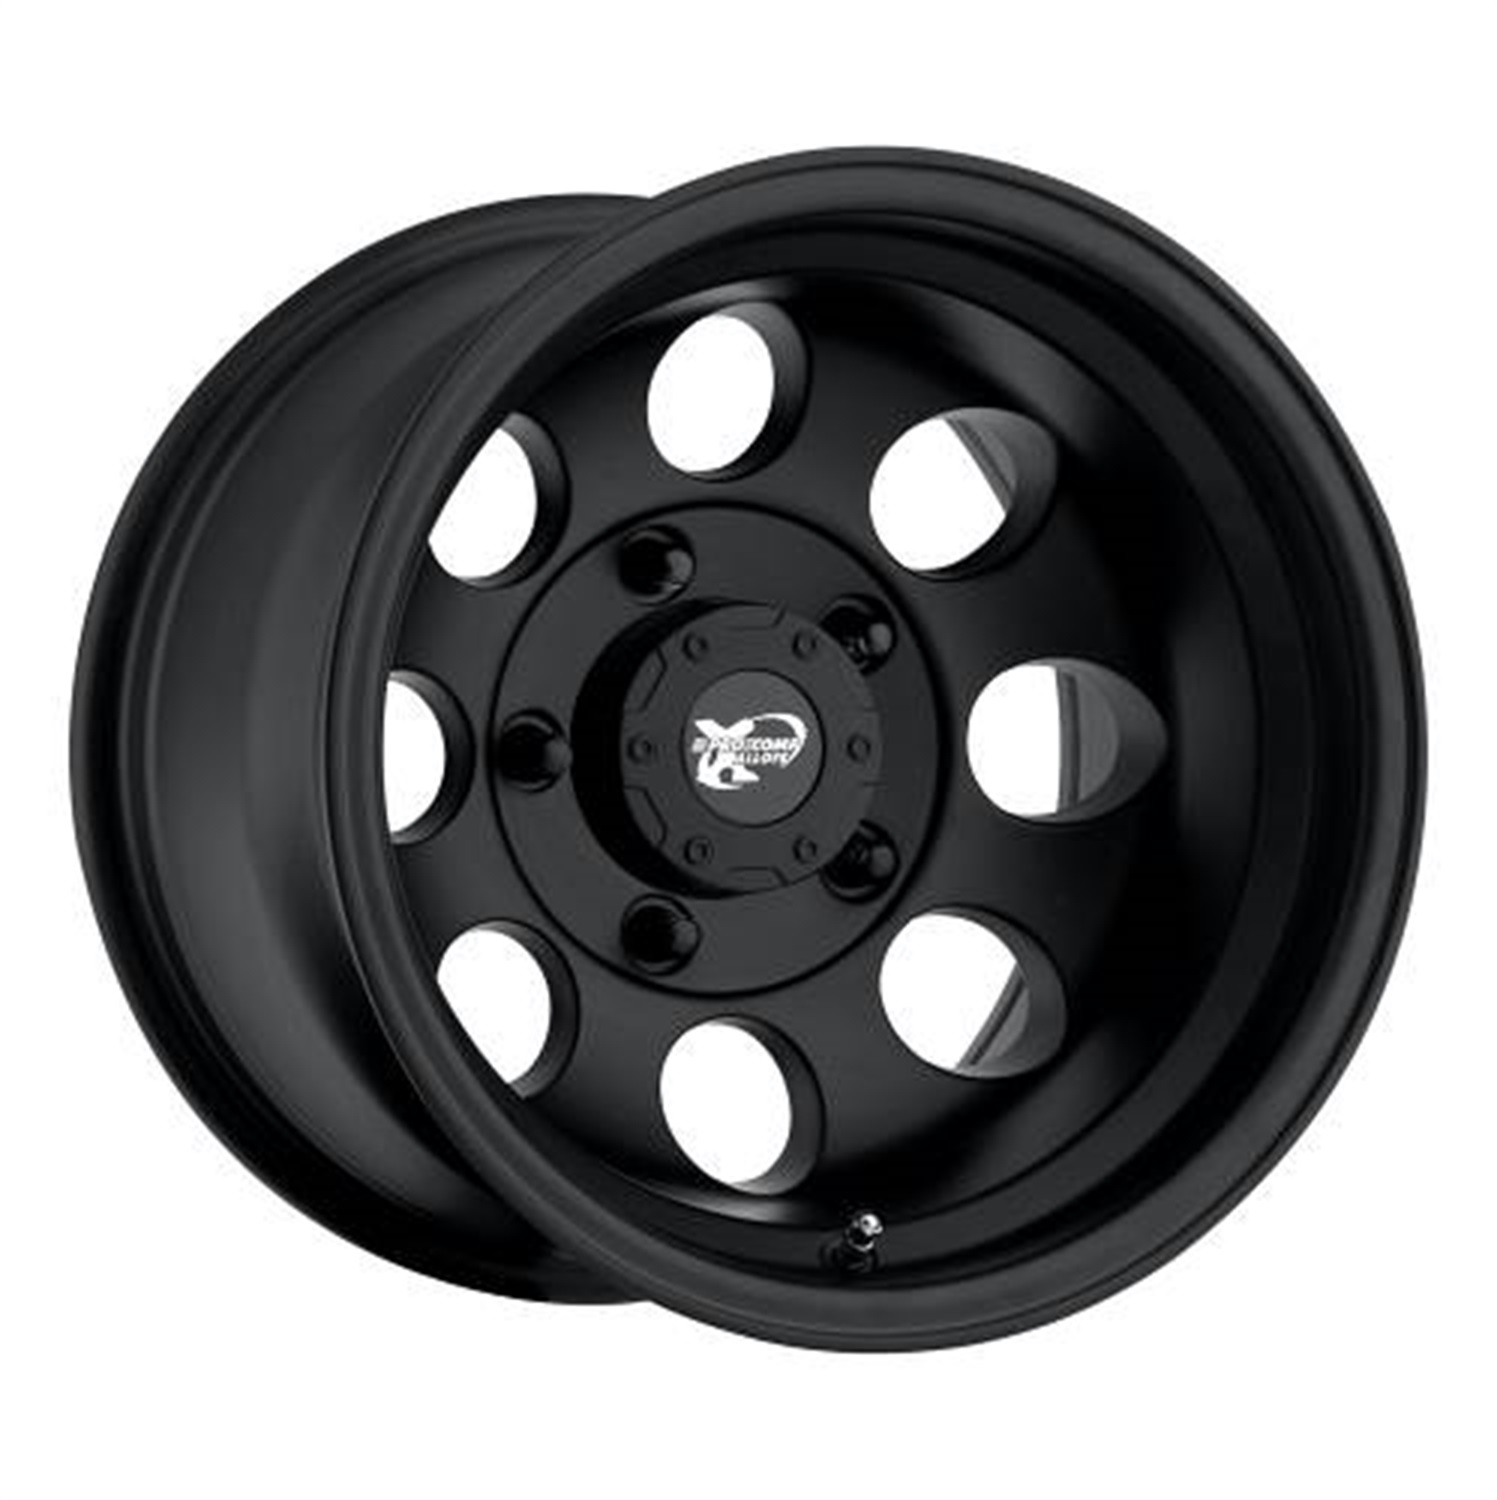 Pro Comp Alloy 7069-5865 Xtreme Alloys Series 7069 Black Finish